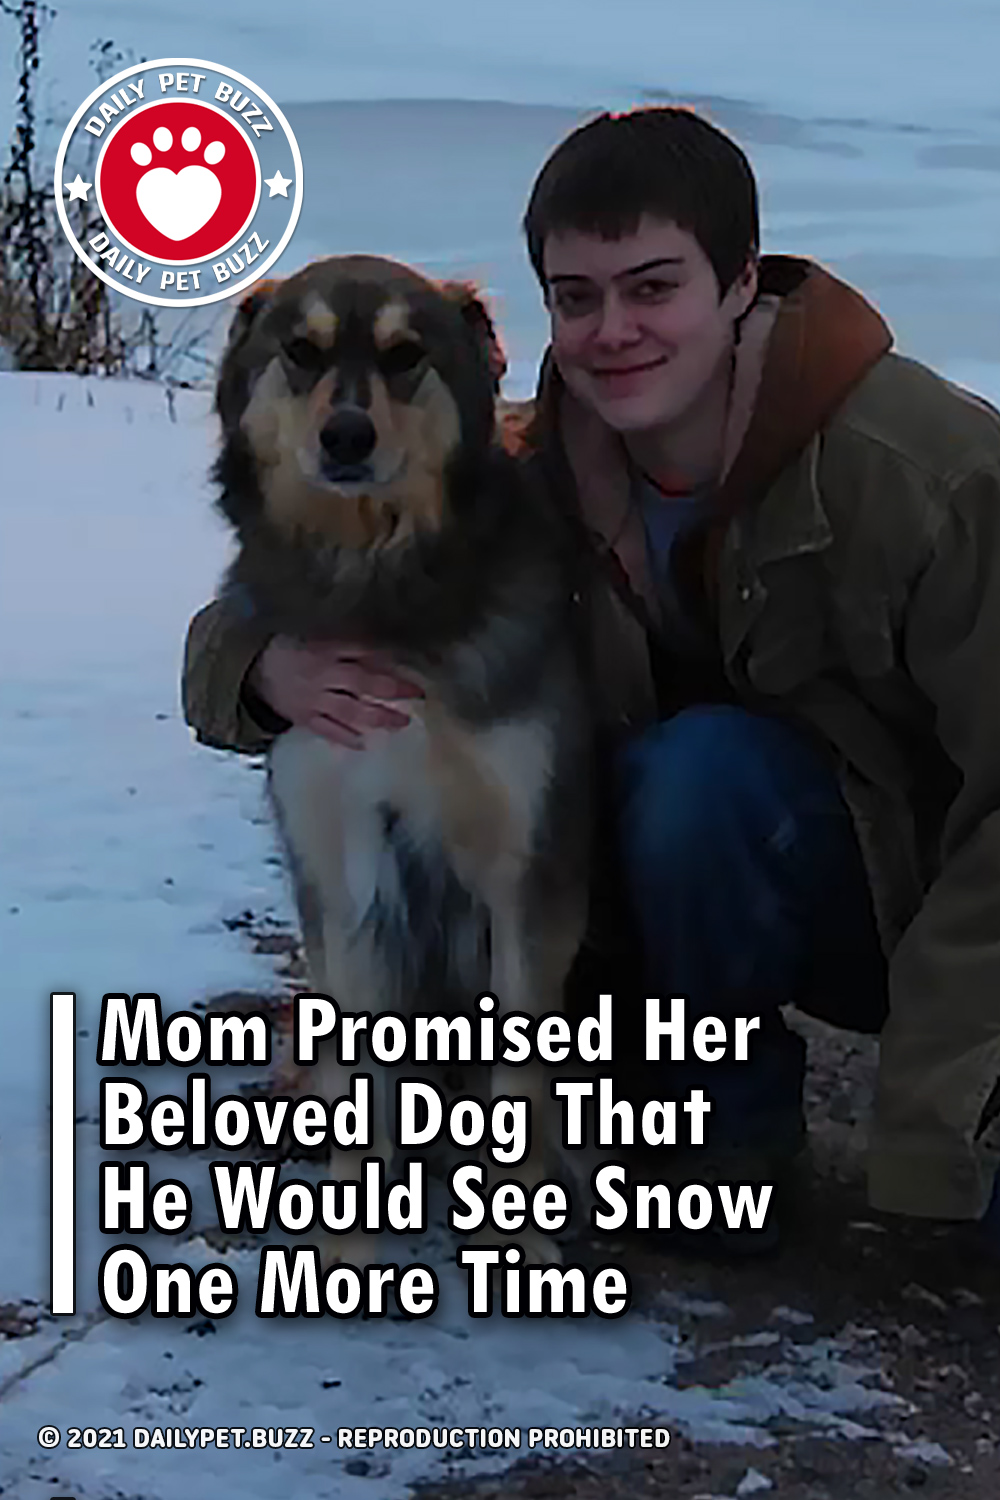 Mom Promised Her Beloved Dog That He Would See Snow One More Time